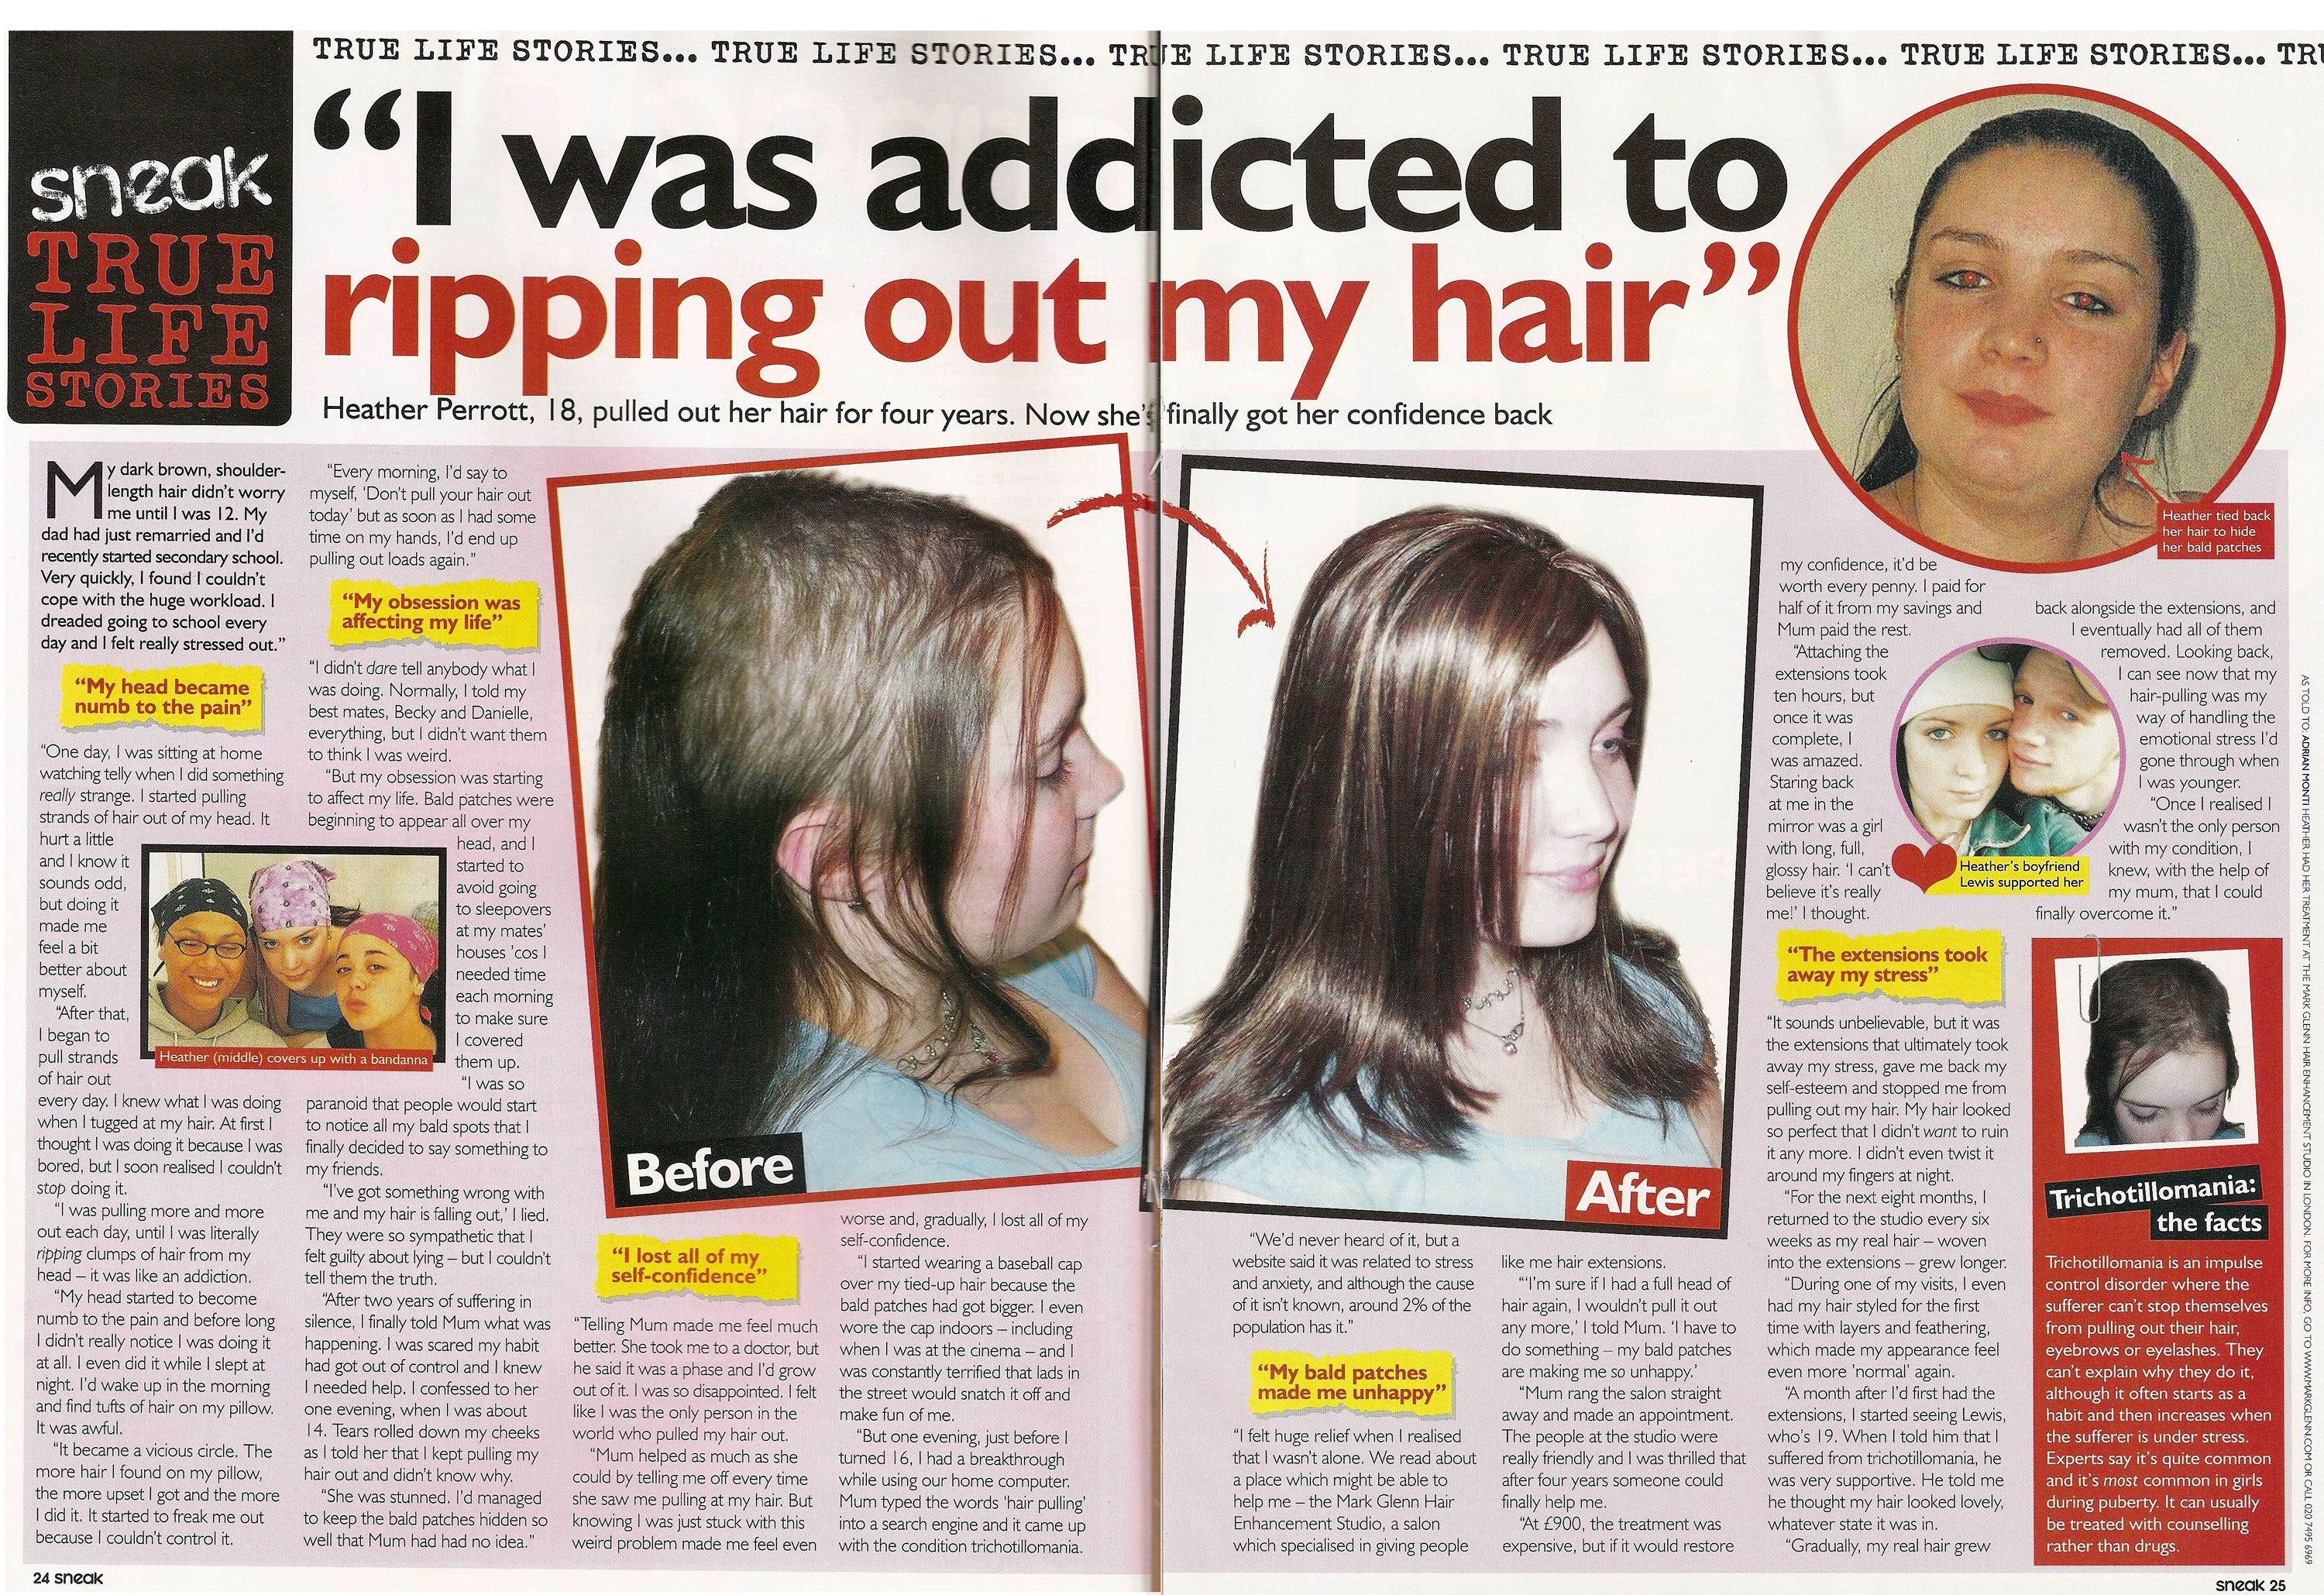 'I was addicted to ripping out my hair' - Sneak Magazine